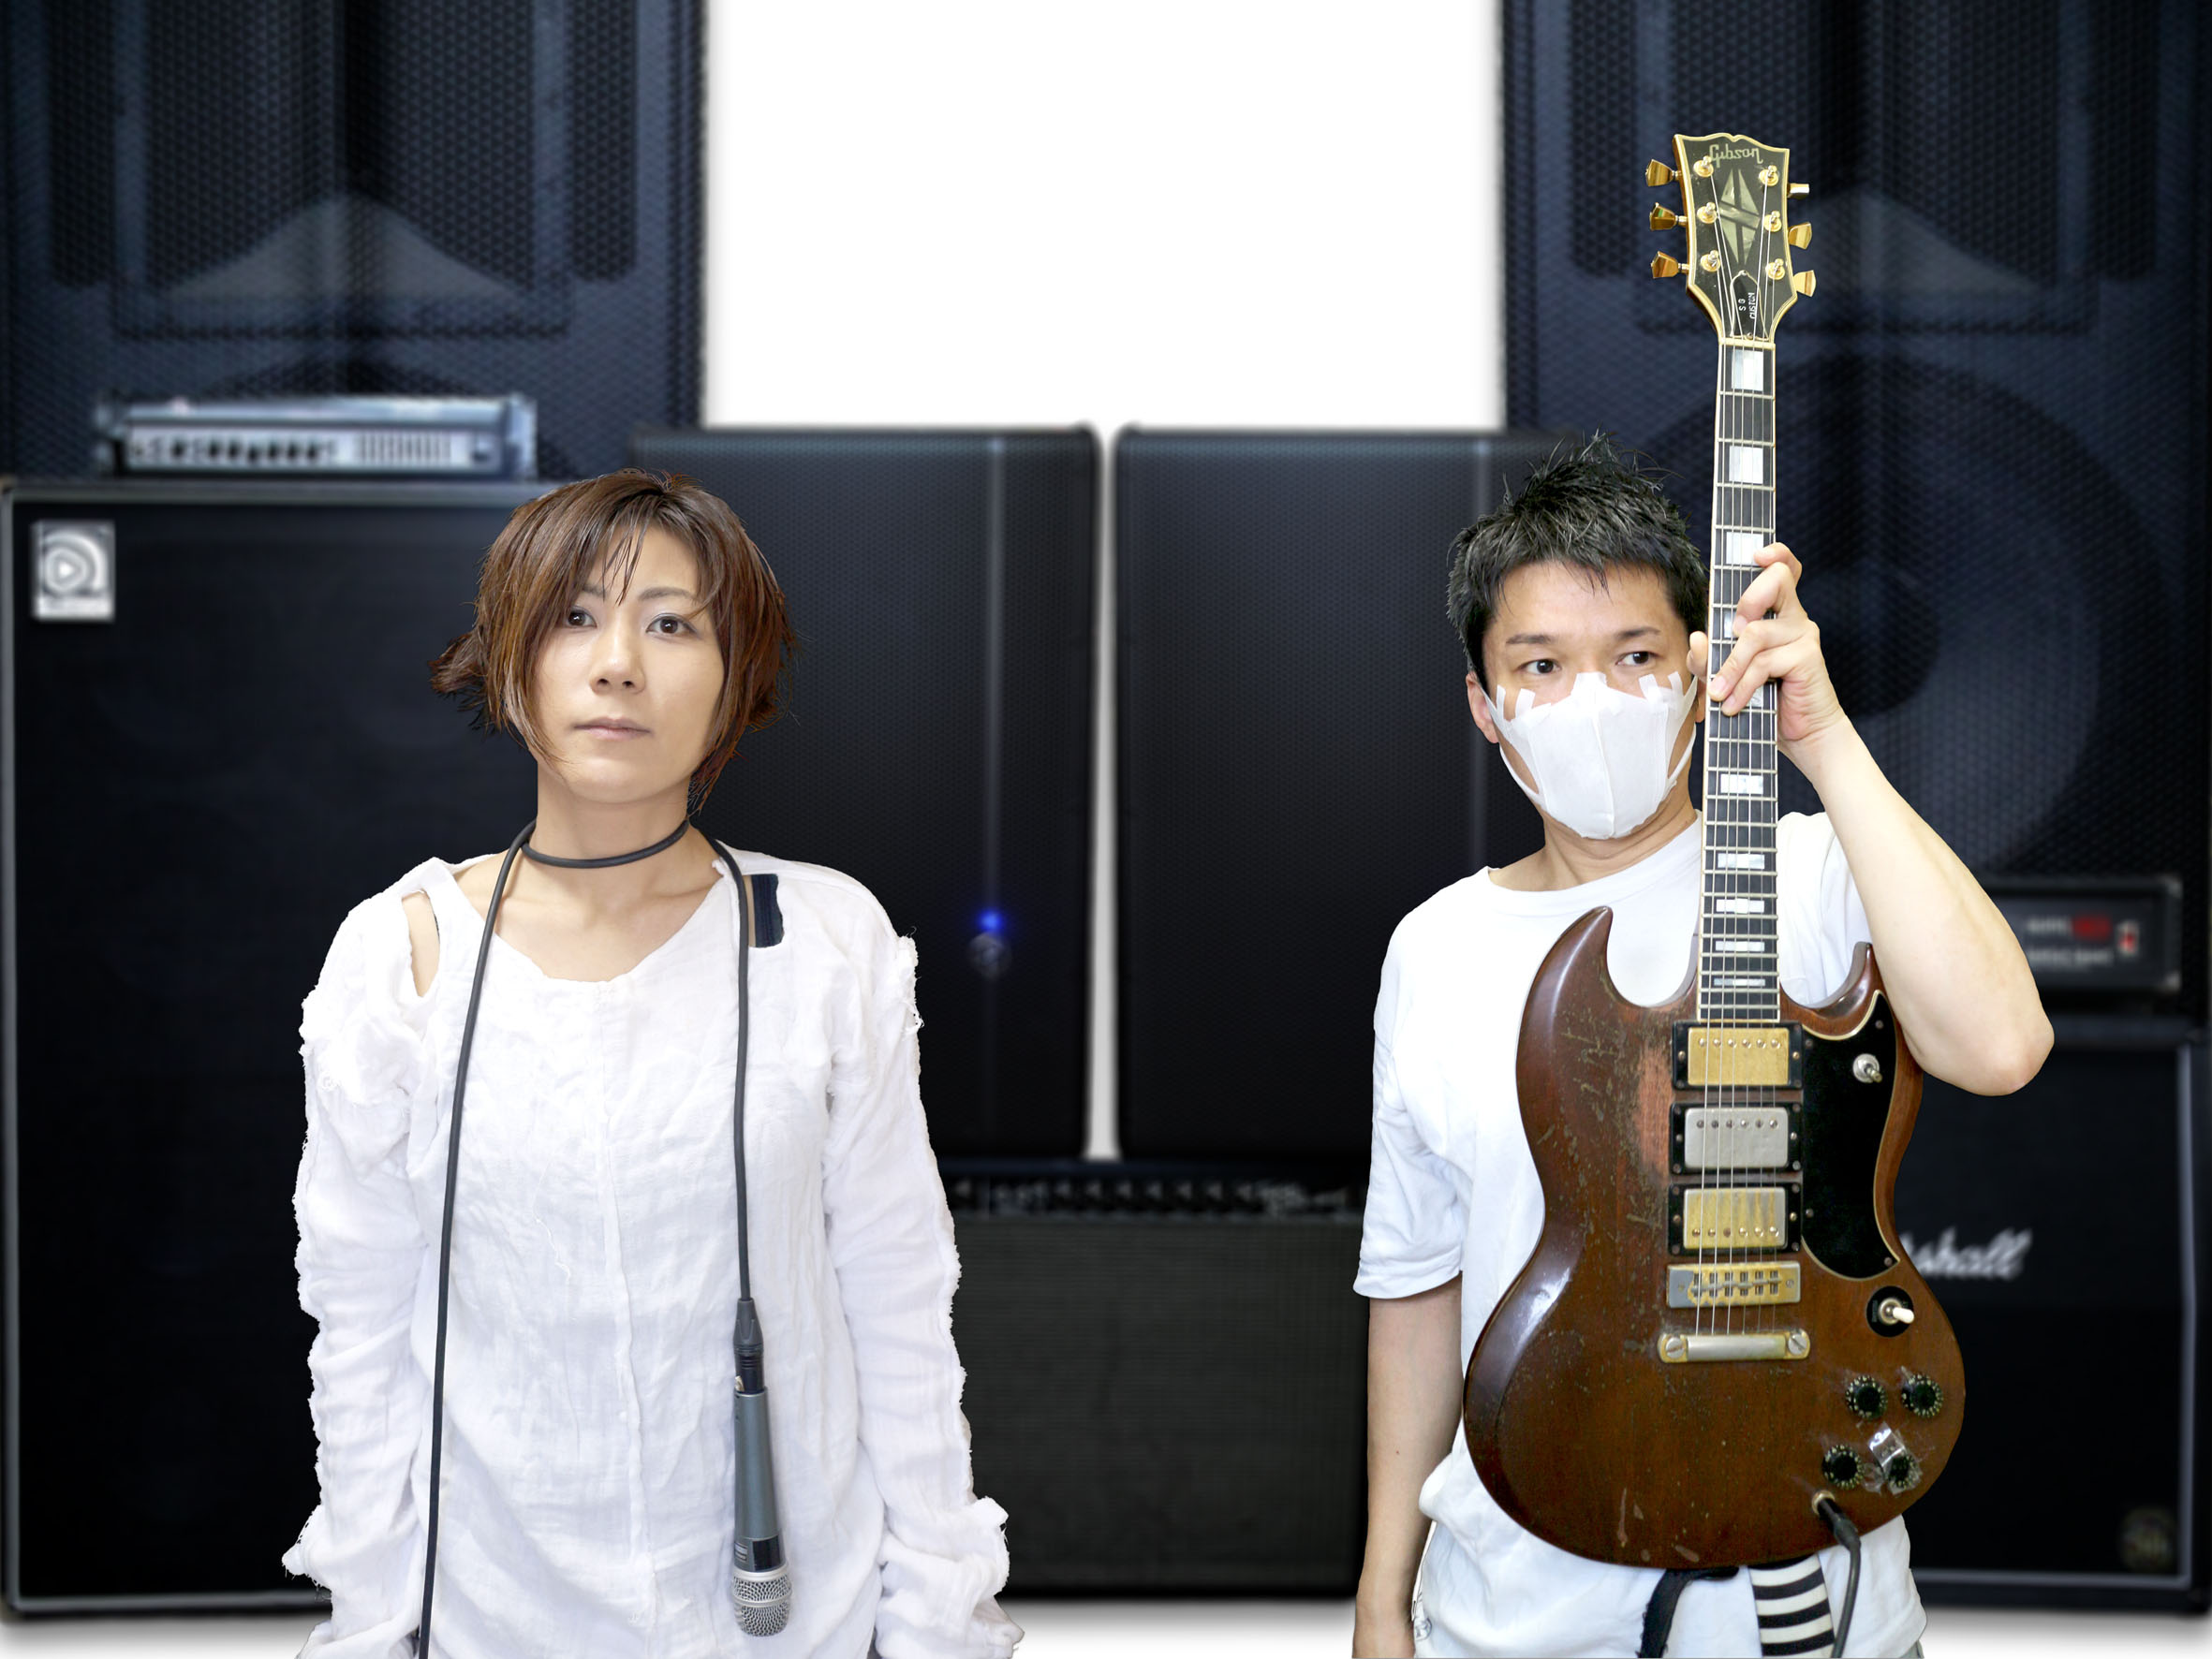 Make some noise: Yasuko 'Yako' Onuki (left) and Ichiro Agata comprise the band Melt-Banana. The two will head to North America this month to tour in support of latest album, 'Fetch.'